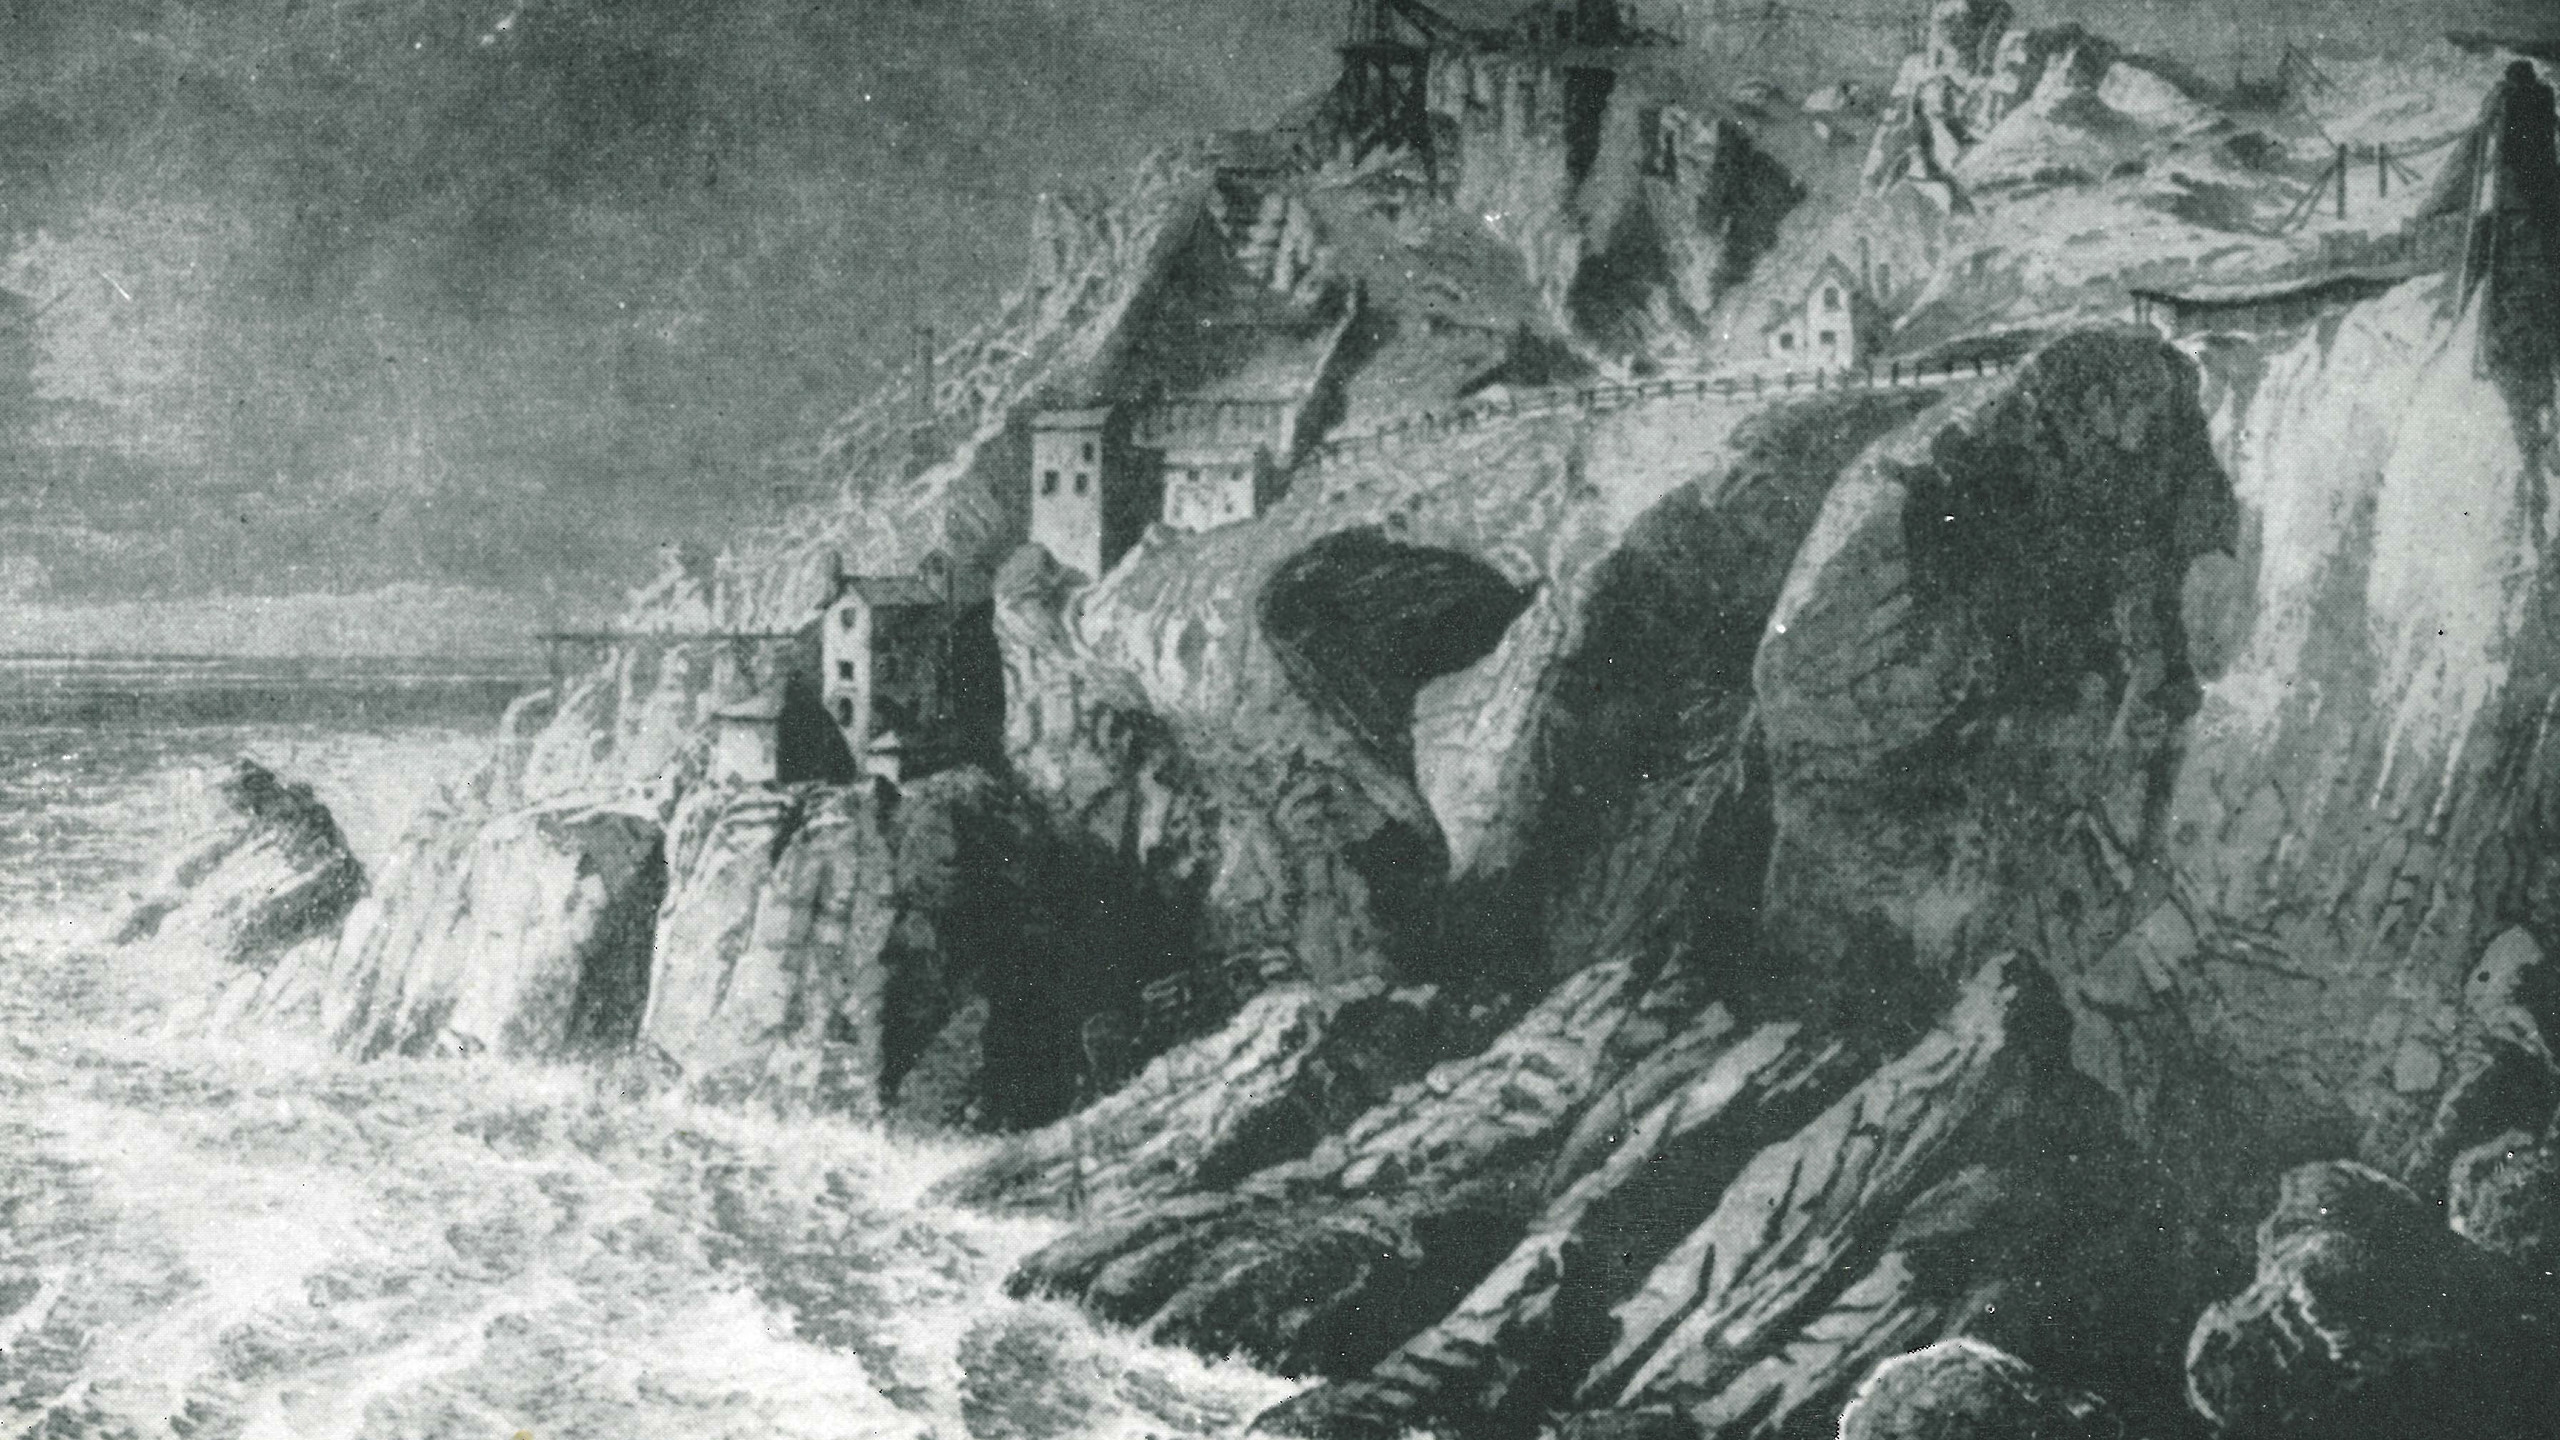 An engraving of the Crows section of Botallack in the 1870's showing the spectacular position of the mine